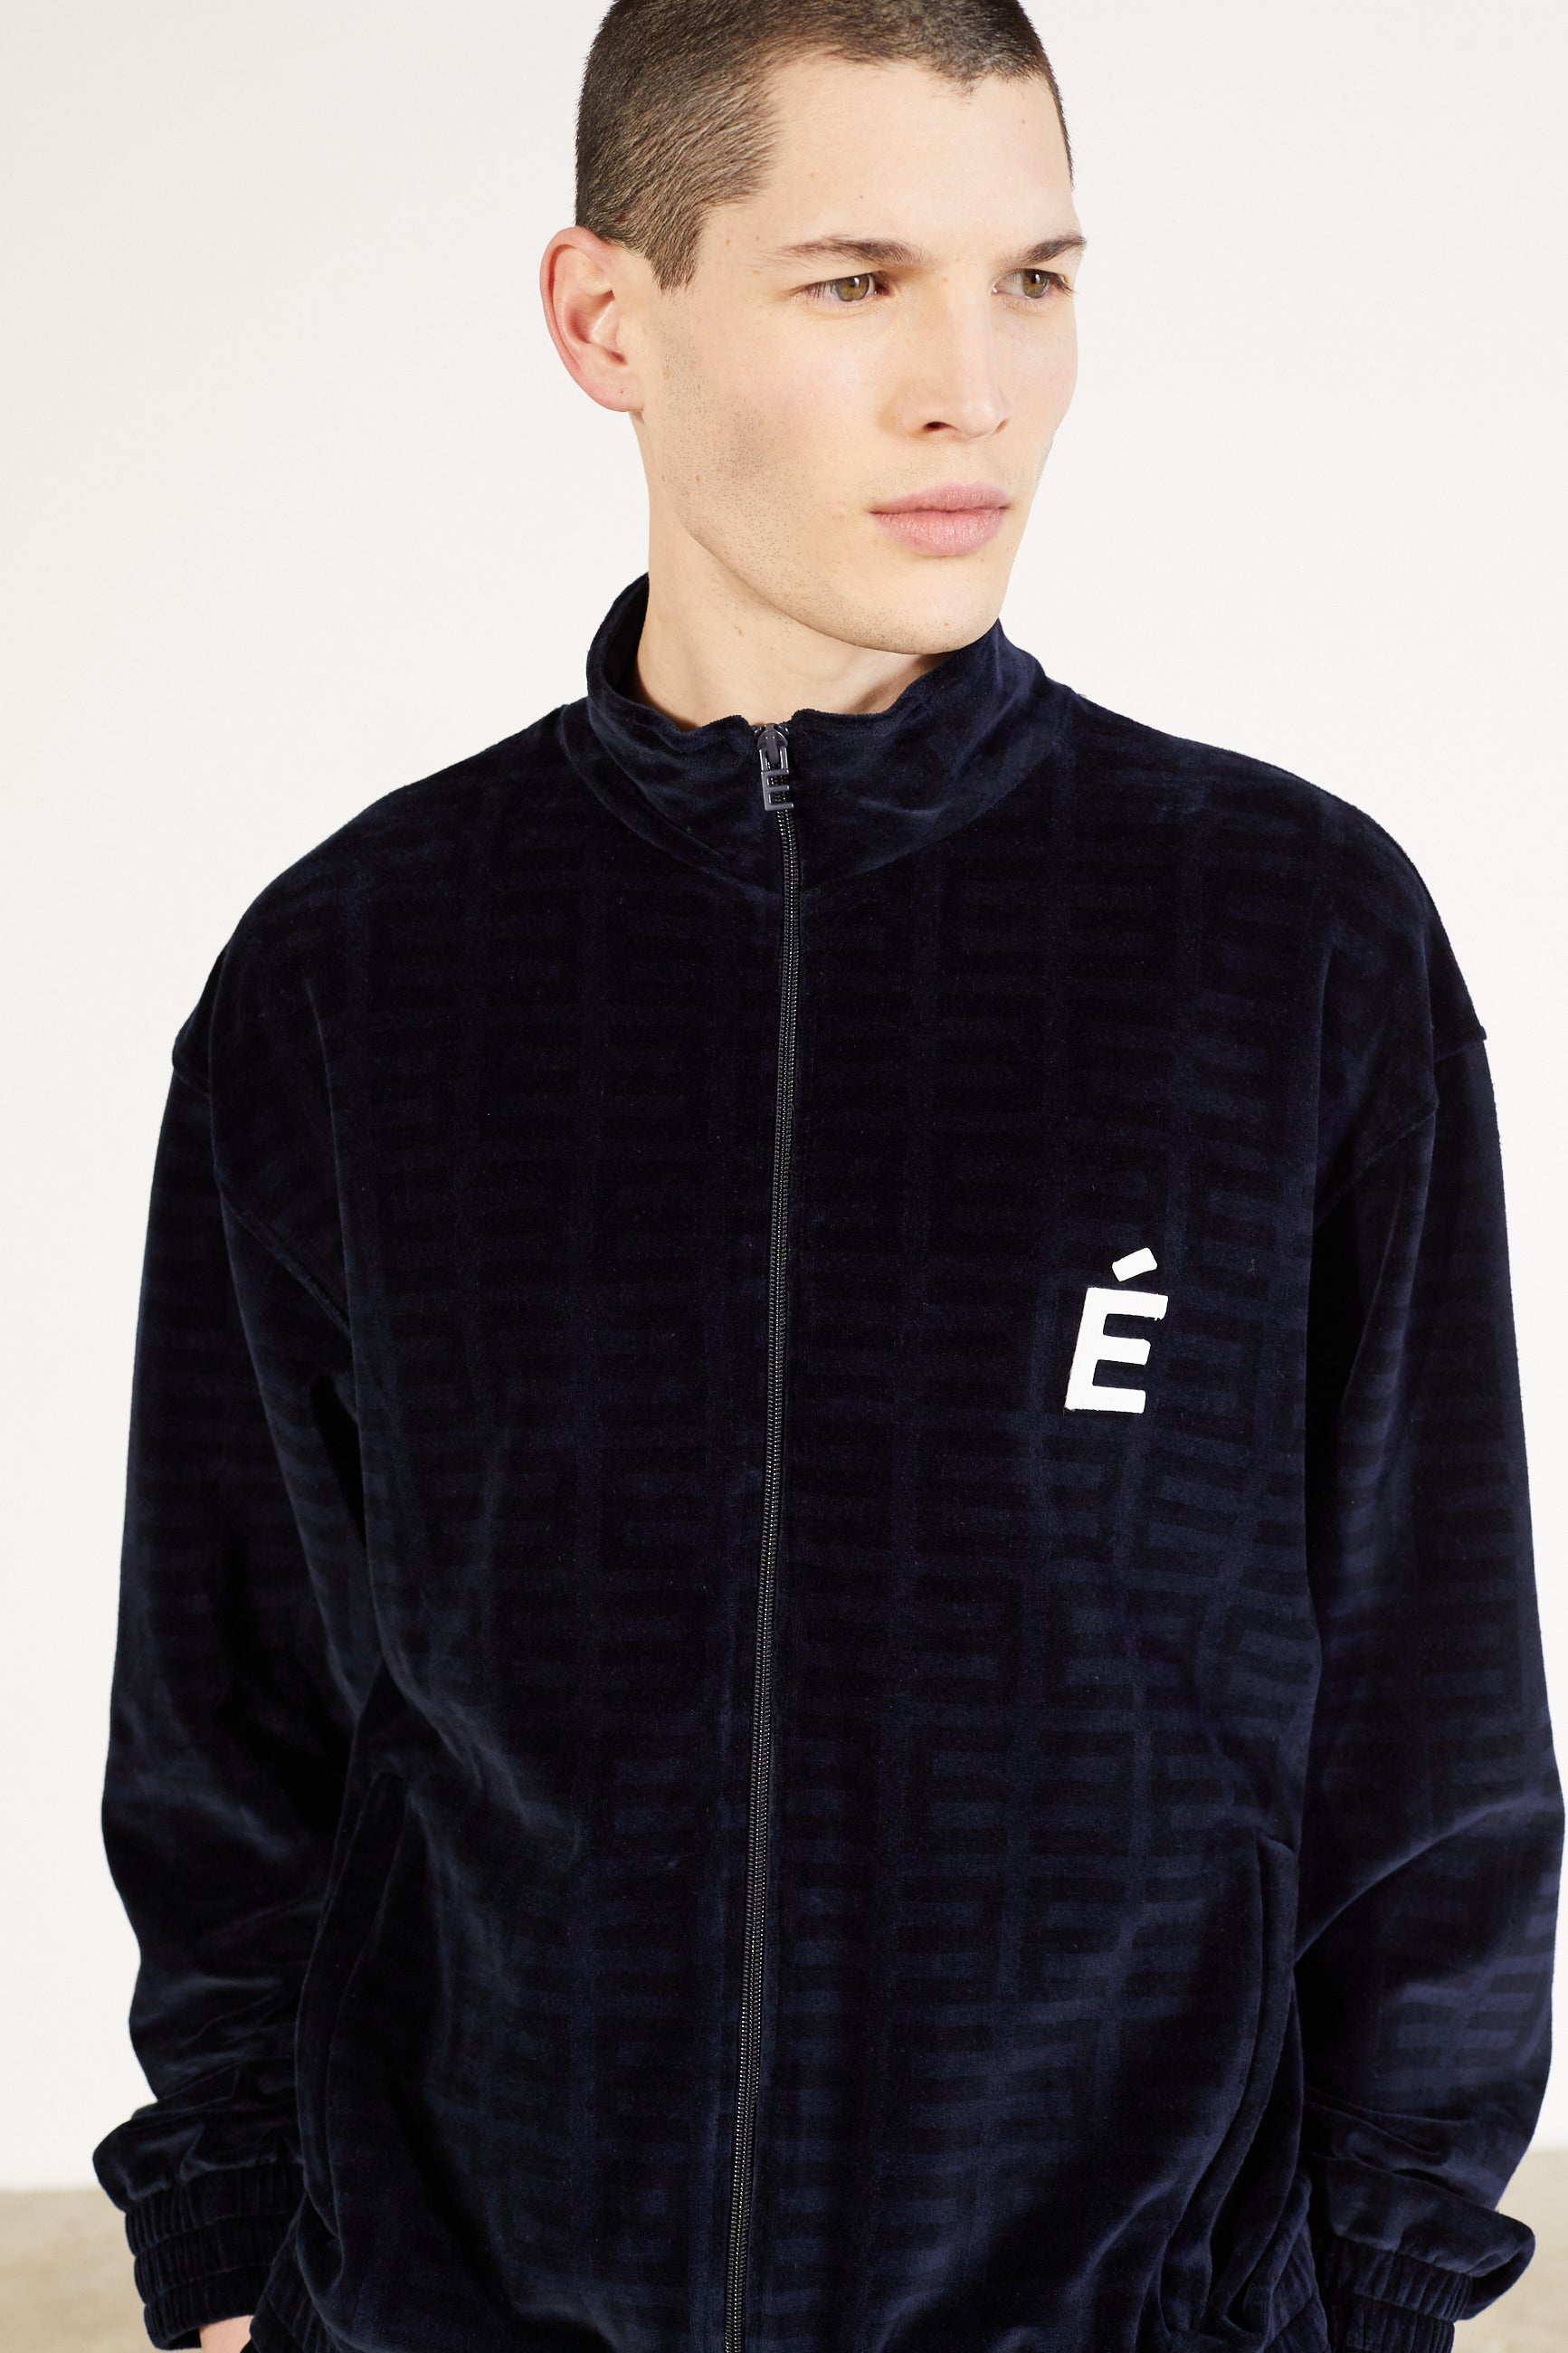 Études Major Tracksuit Velvet Navy Jacket 4